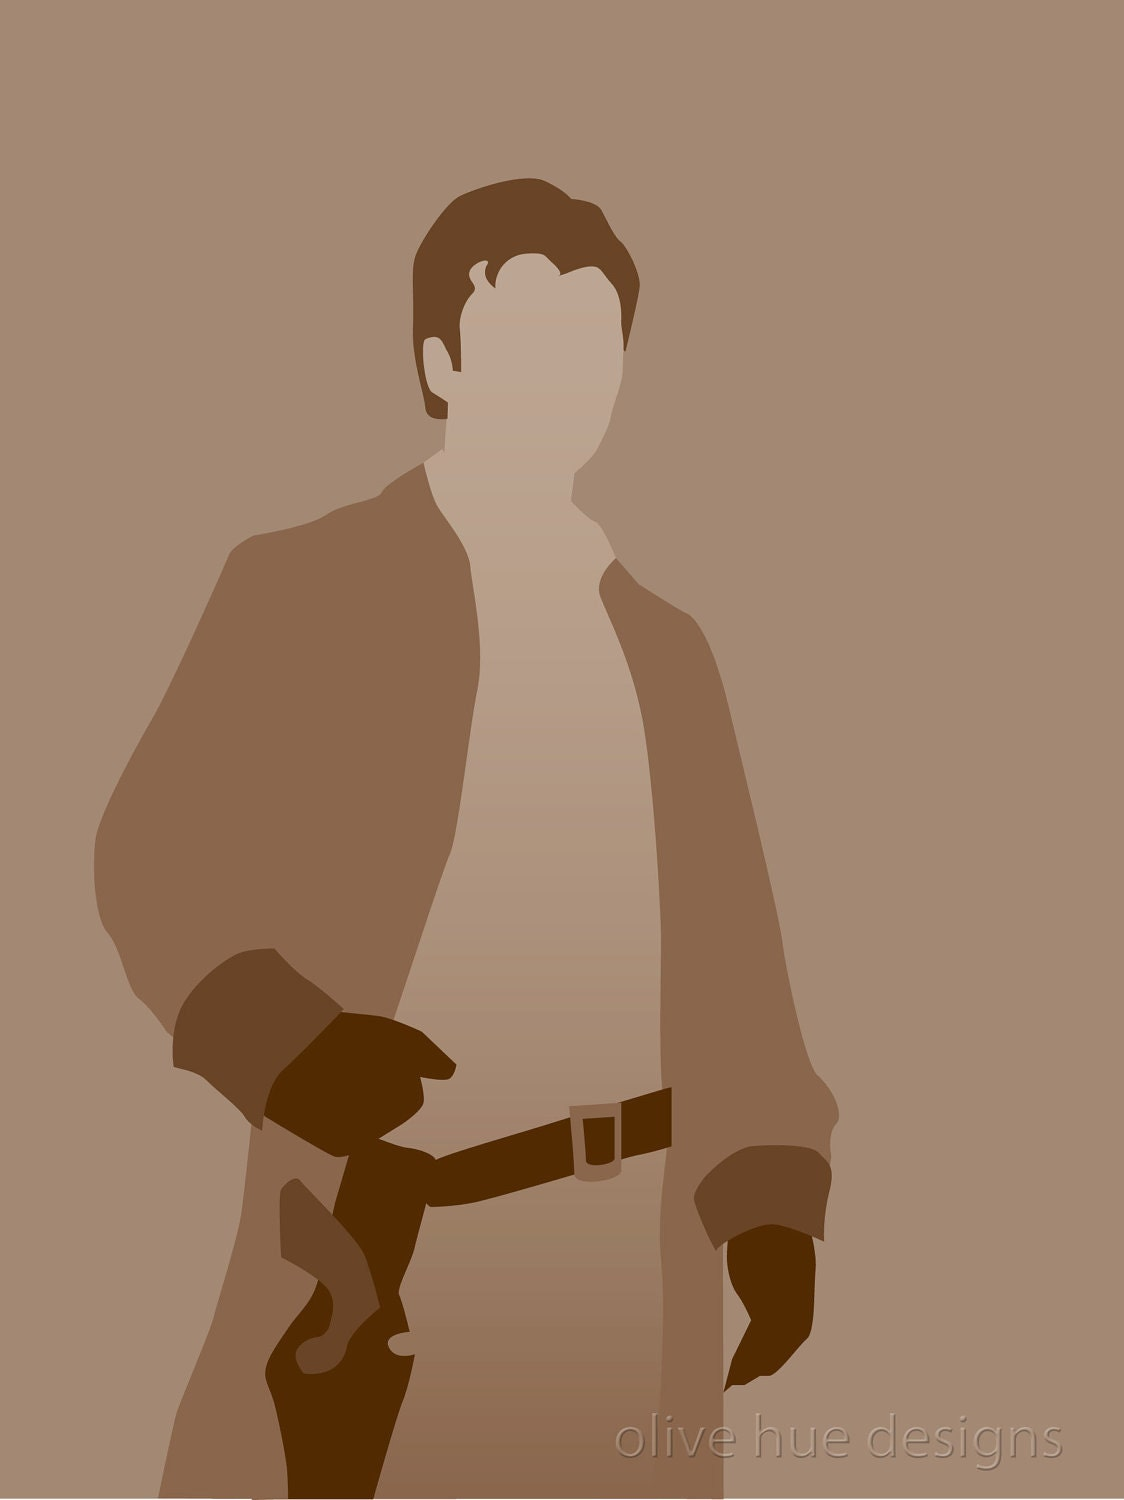 Captain Malcolm Reynolds Firefly 8x10 minimalist poster in brownSerenity Minimalist Poster